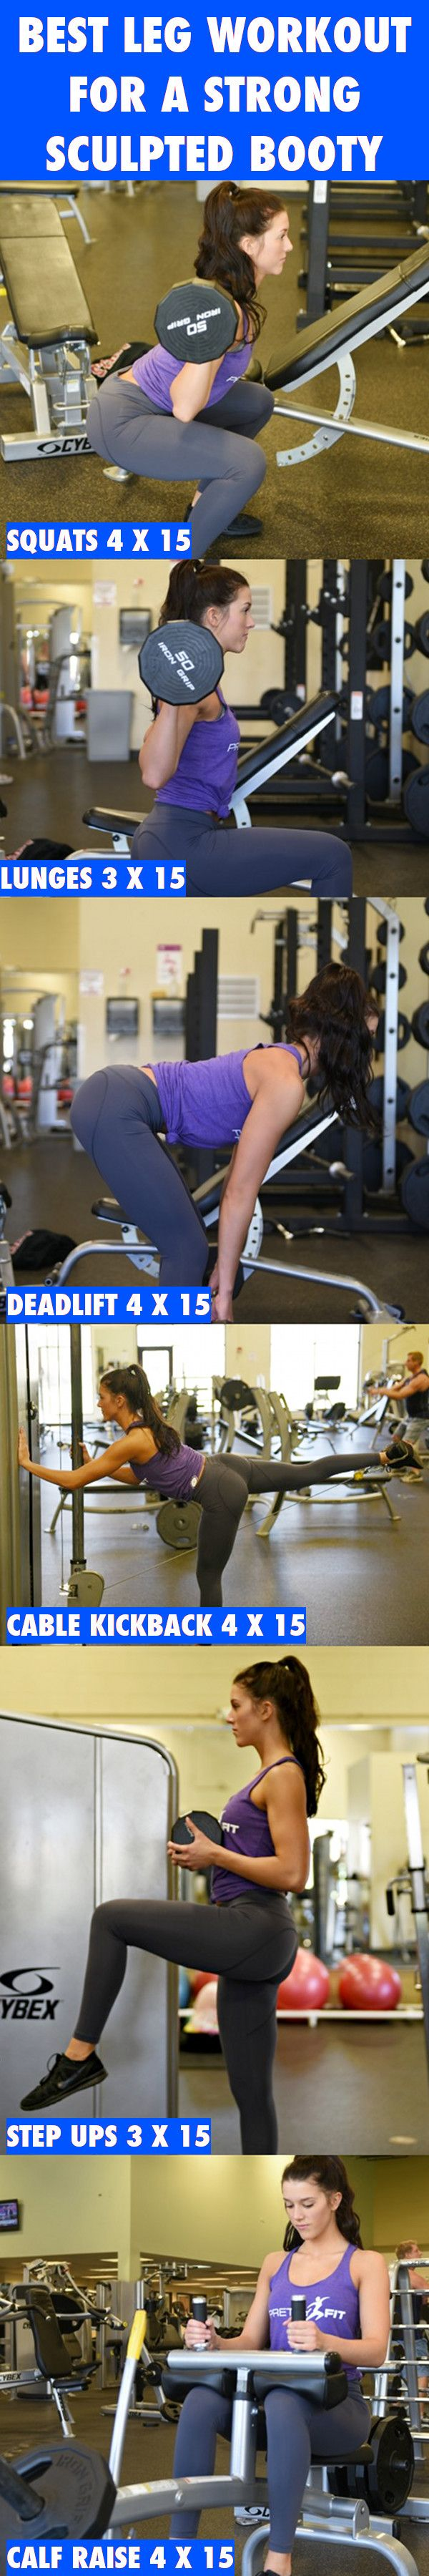 Use this awesome workout to build strong, sculpted legs while increasing your metabolism. http://blog.imprettyfit.com/workouts/best-leg-workout-for-strong-and-sculpted-legs/  Leg Workout